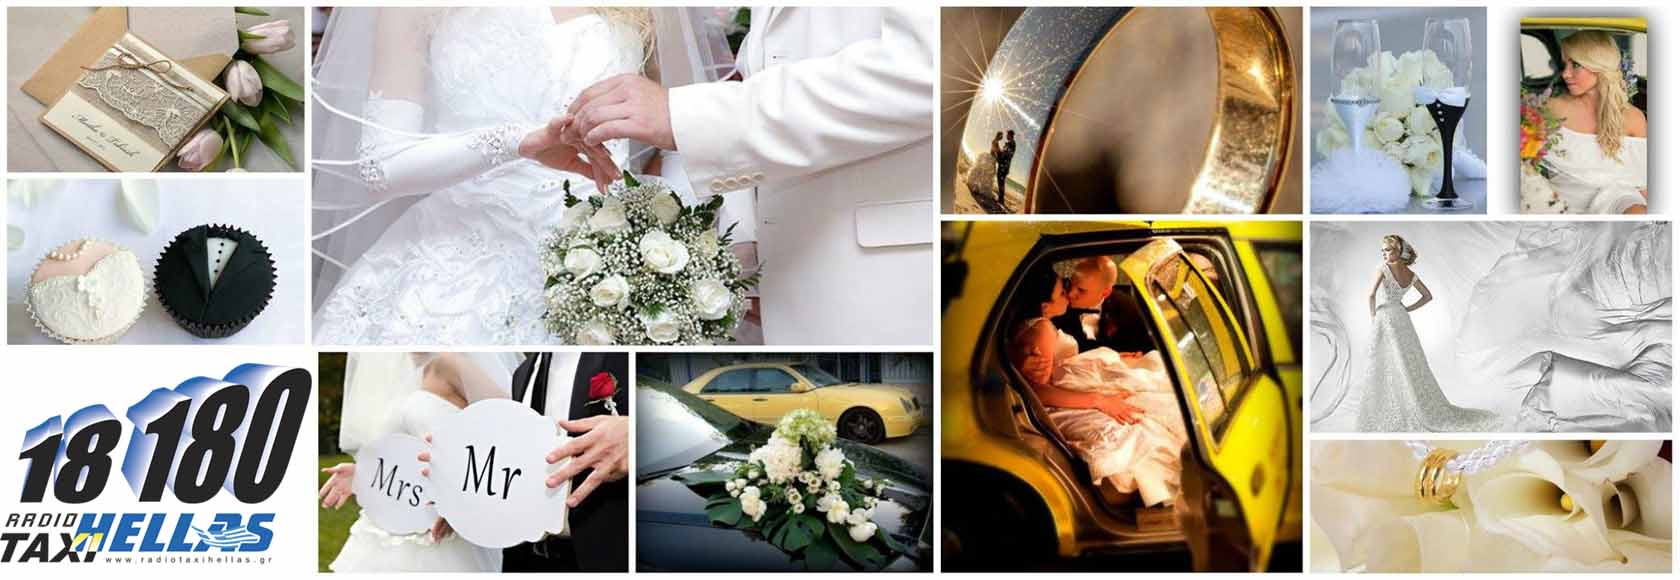 radiotaxi and wedding